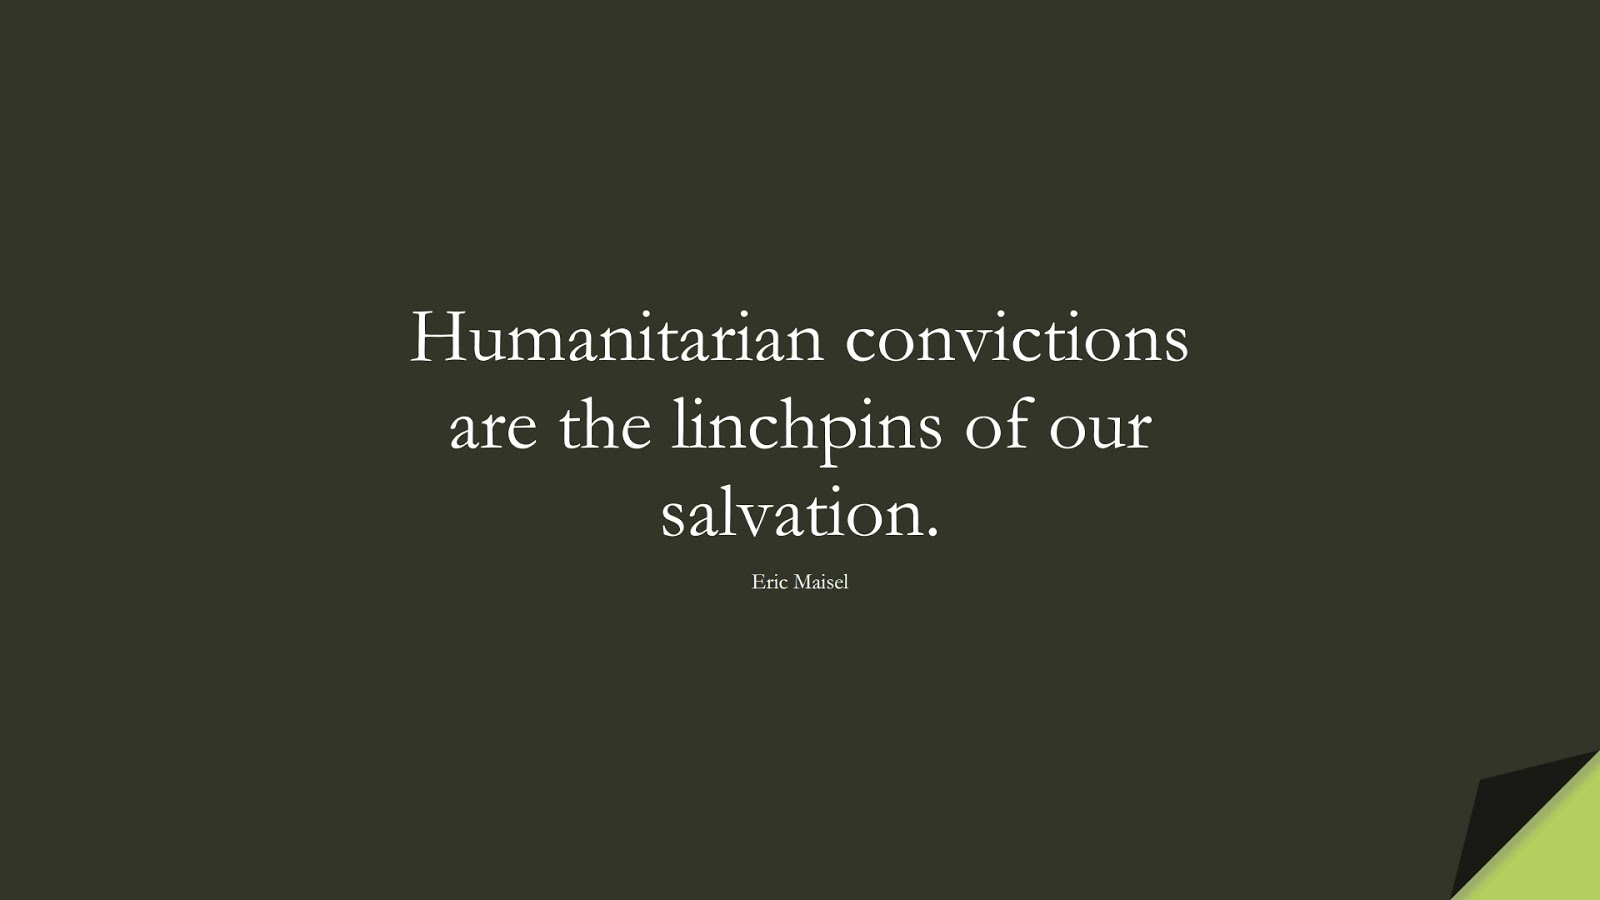 Humanitarian convictions are the linchpins of our salvation. (Eric Maisel);  #HumanityQuotes